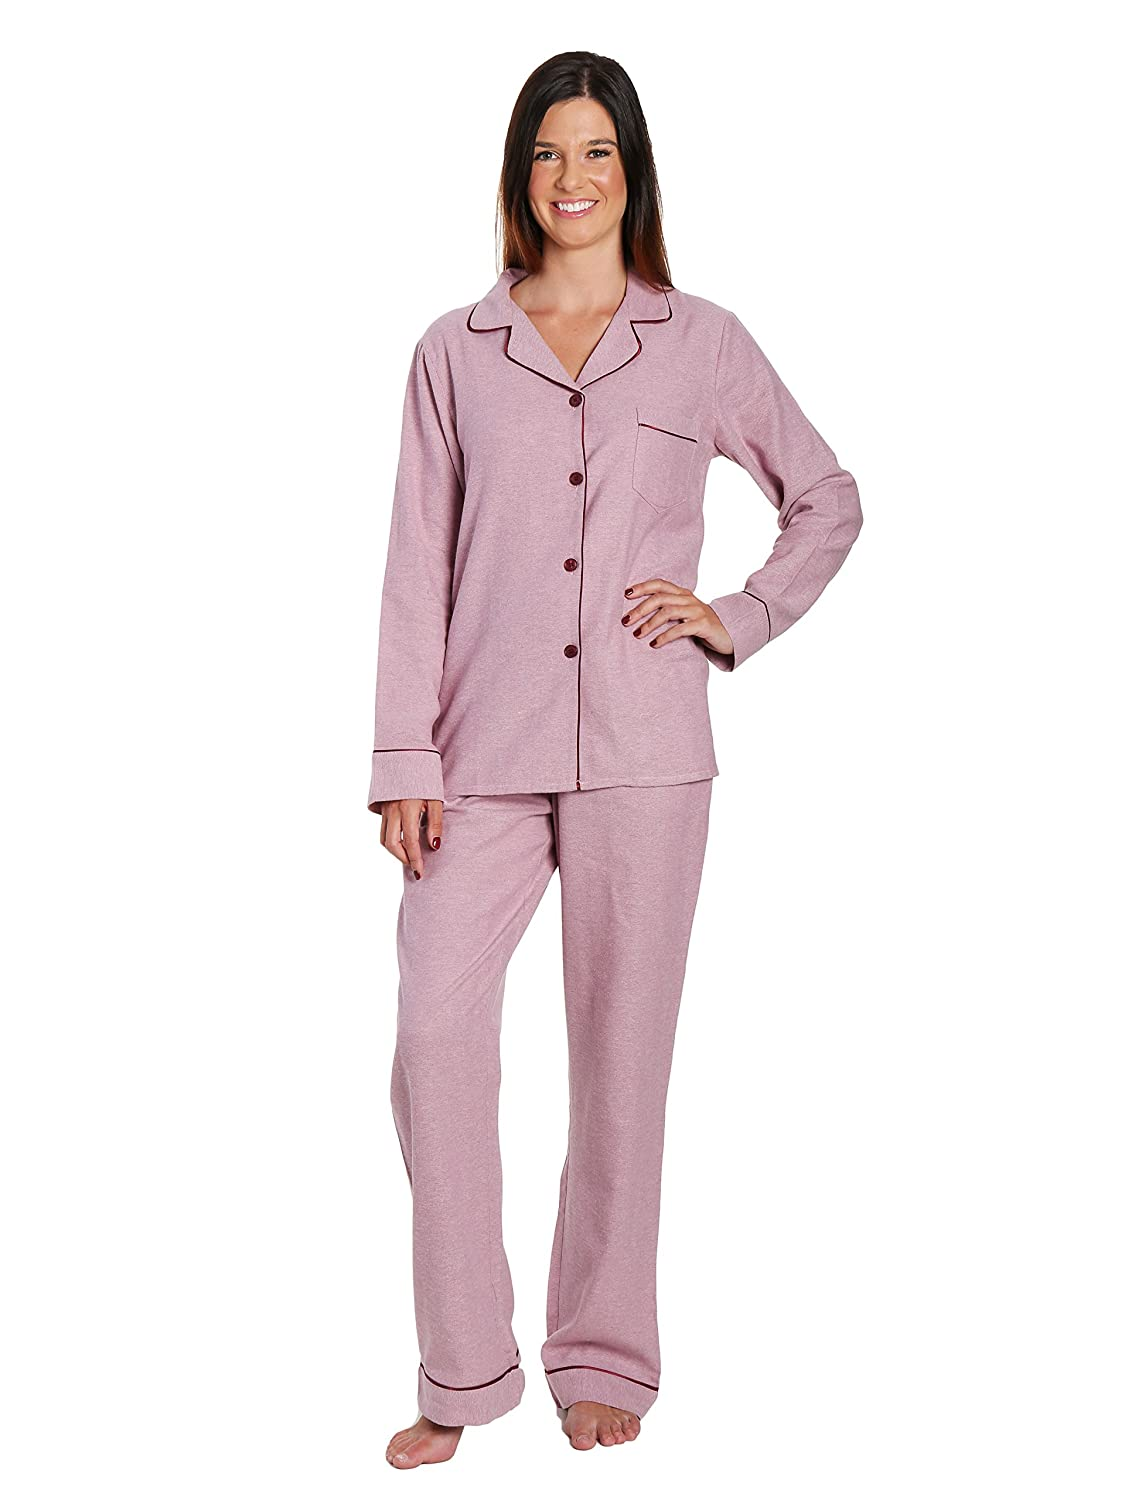 4a3e731df5 Noble Mount Womens Premium 100% Cotton Yarn Dyed Flannel Pajama Sleepwear  Set at Amazon Women s Clothing store